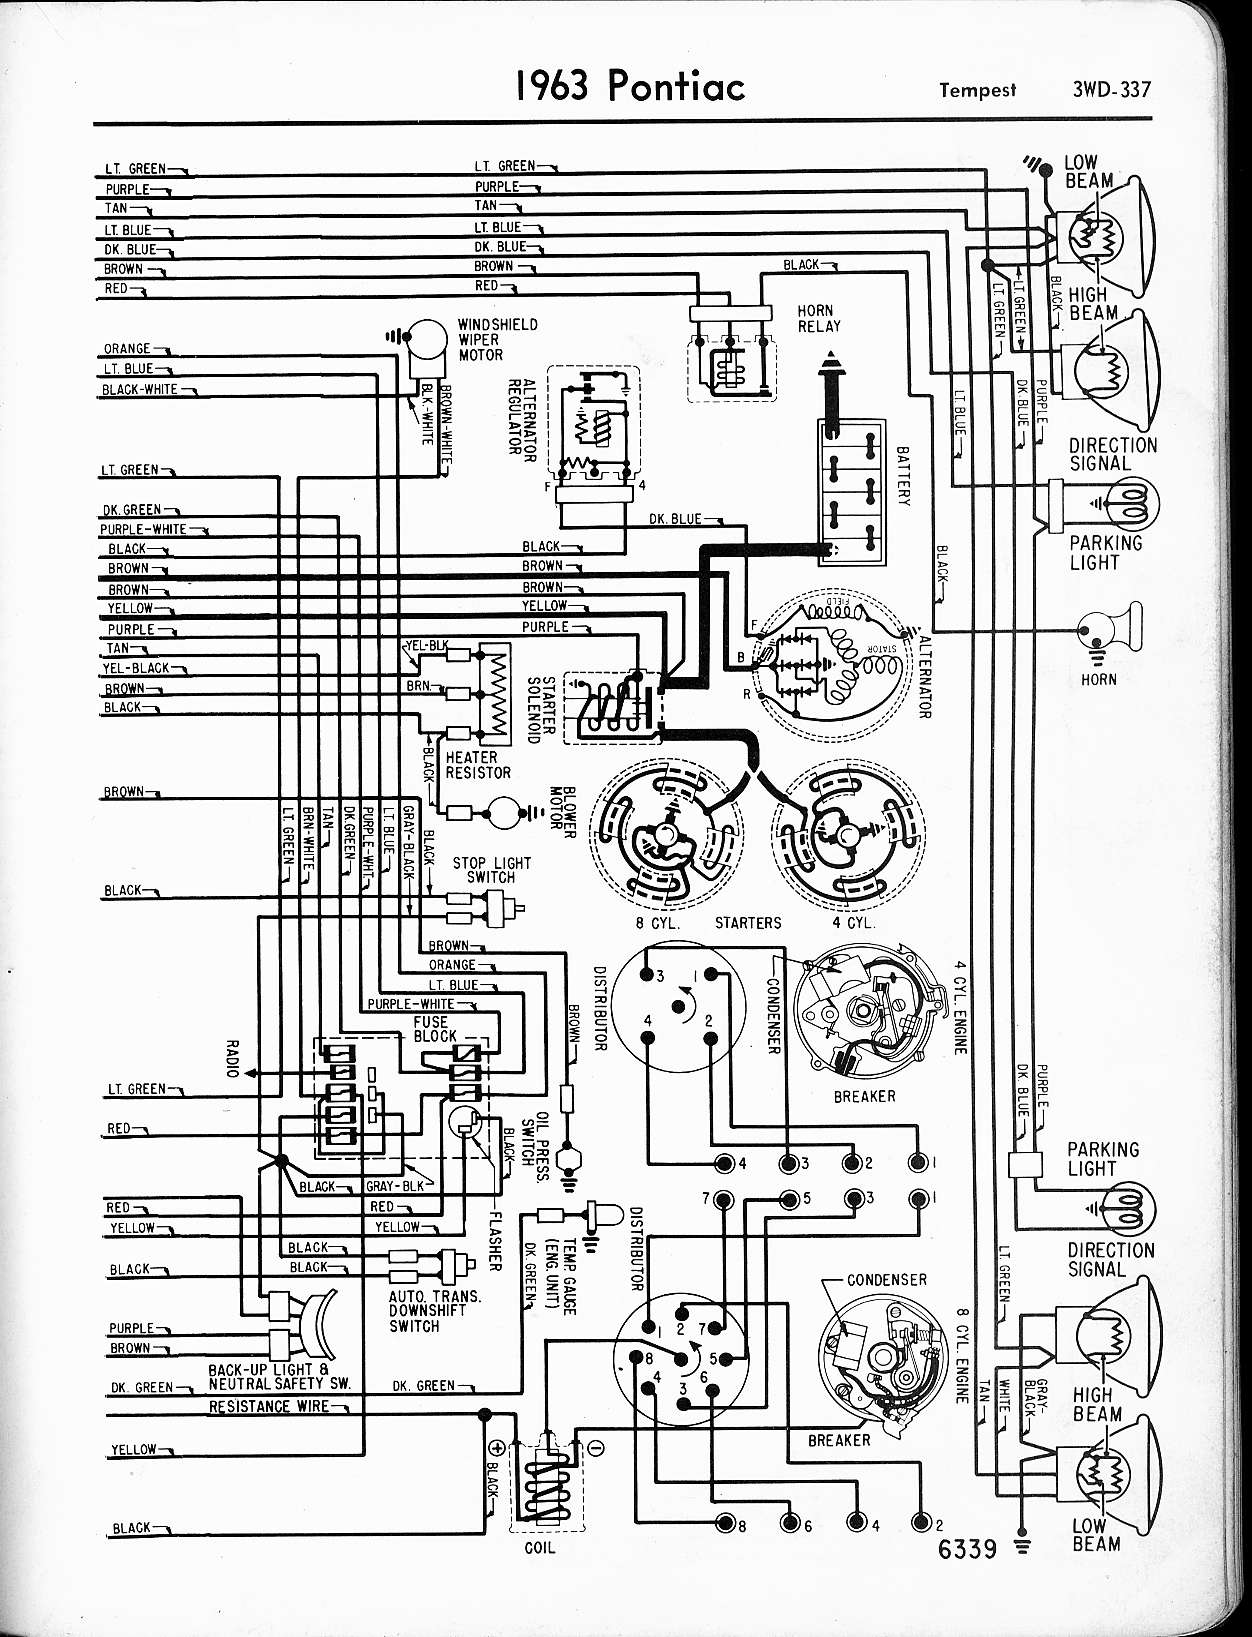 65 Pontiac Wiring Diagram Simple Wiring Diagram 69 Camaro Wiring Schematic  65 Gto Wiring Diagram Schematic